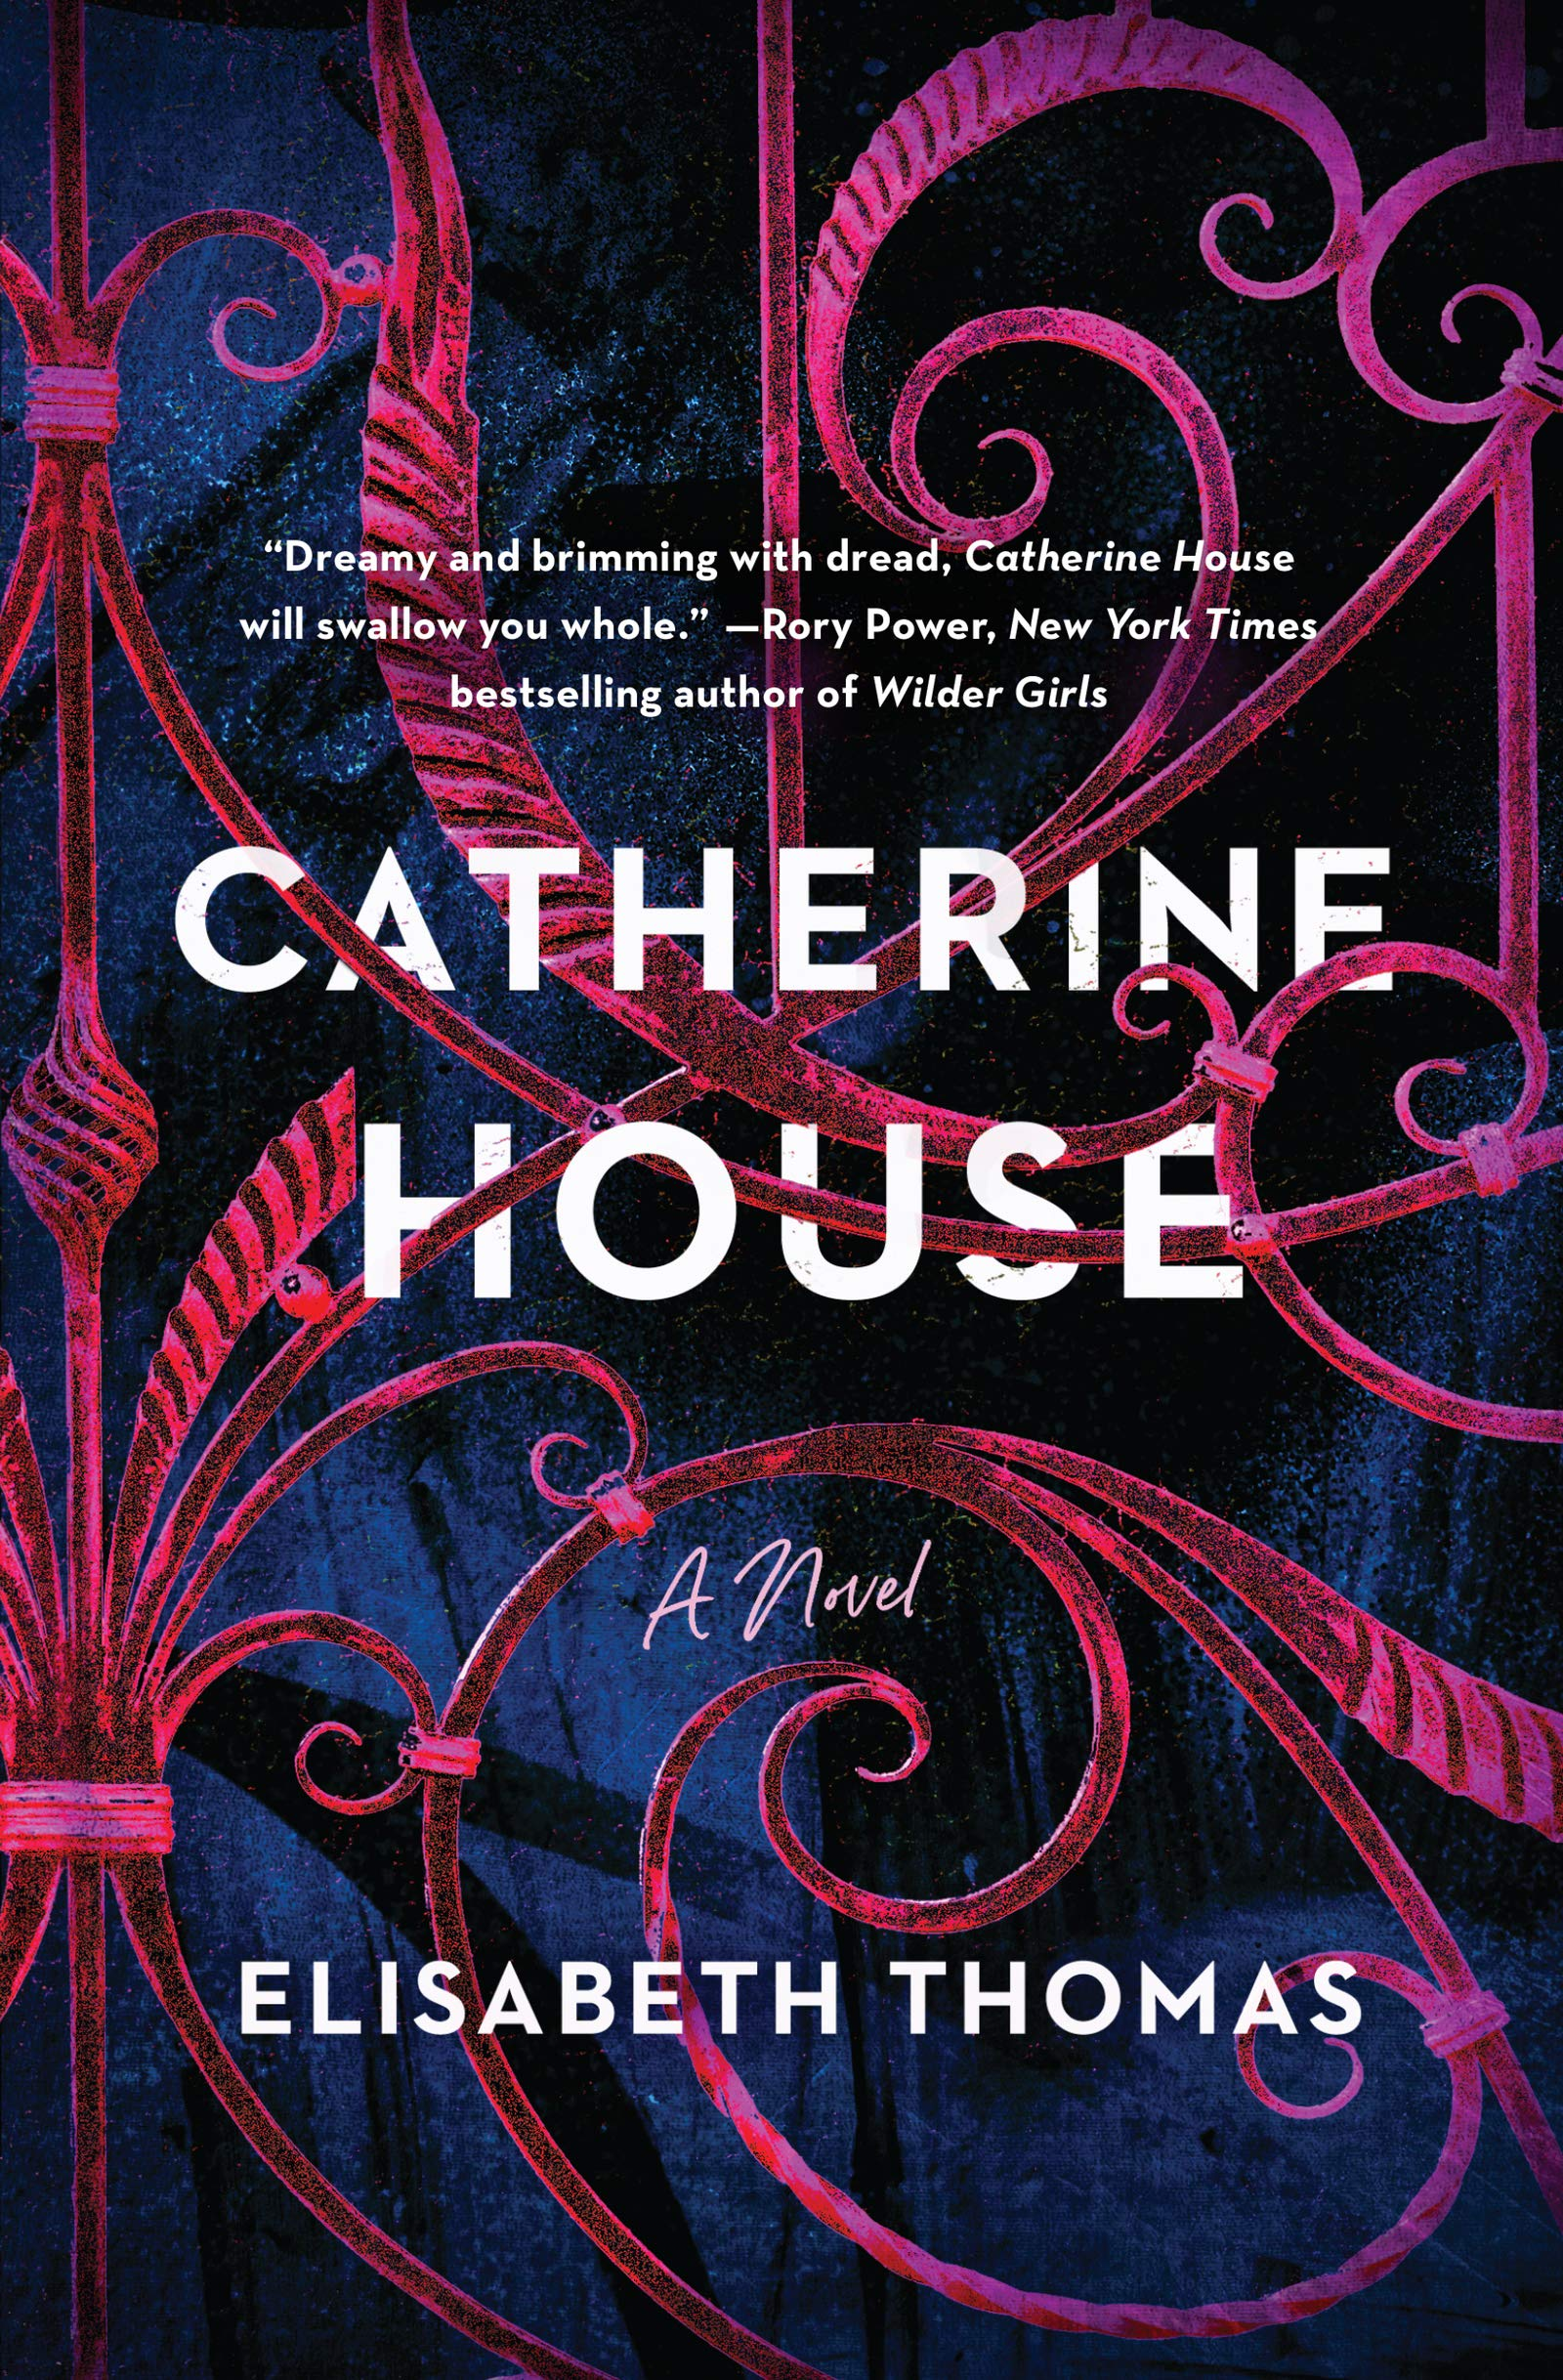 Amazon.com: Catherine House: A Novel (9780062905659): Thomas ...